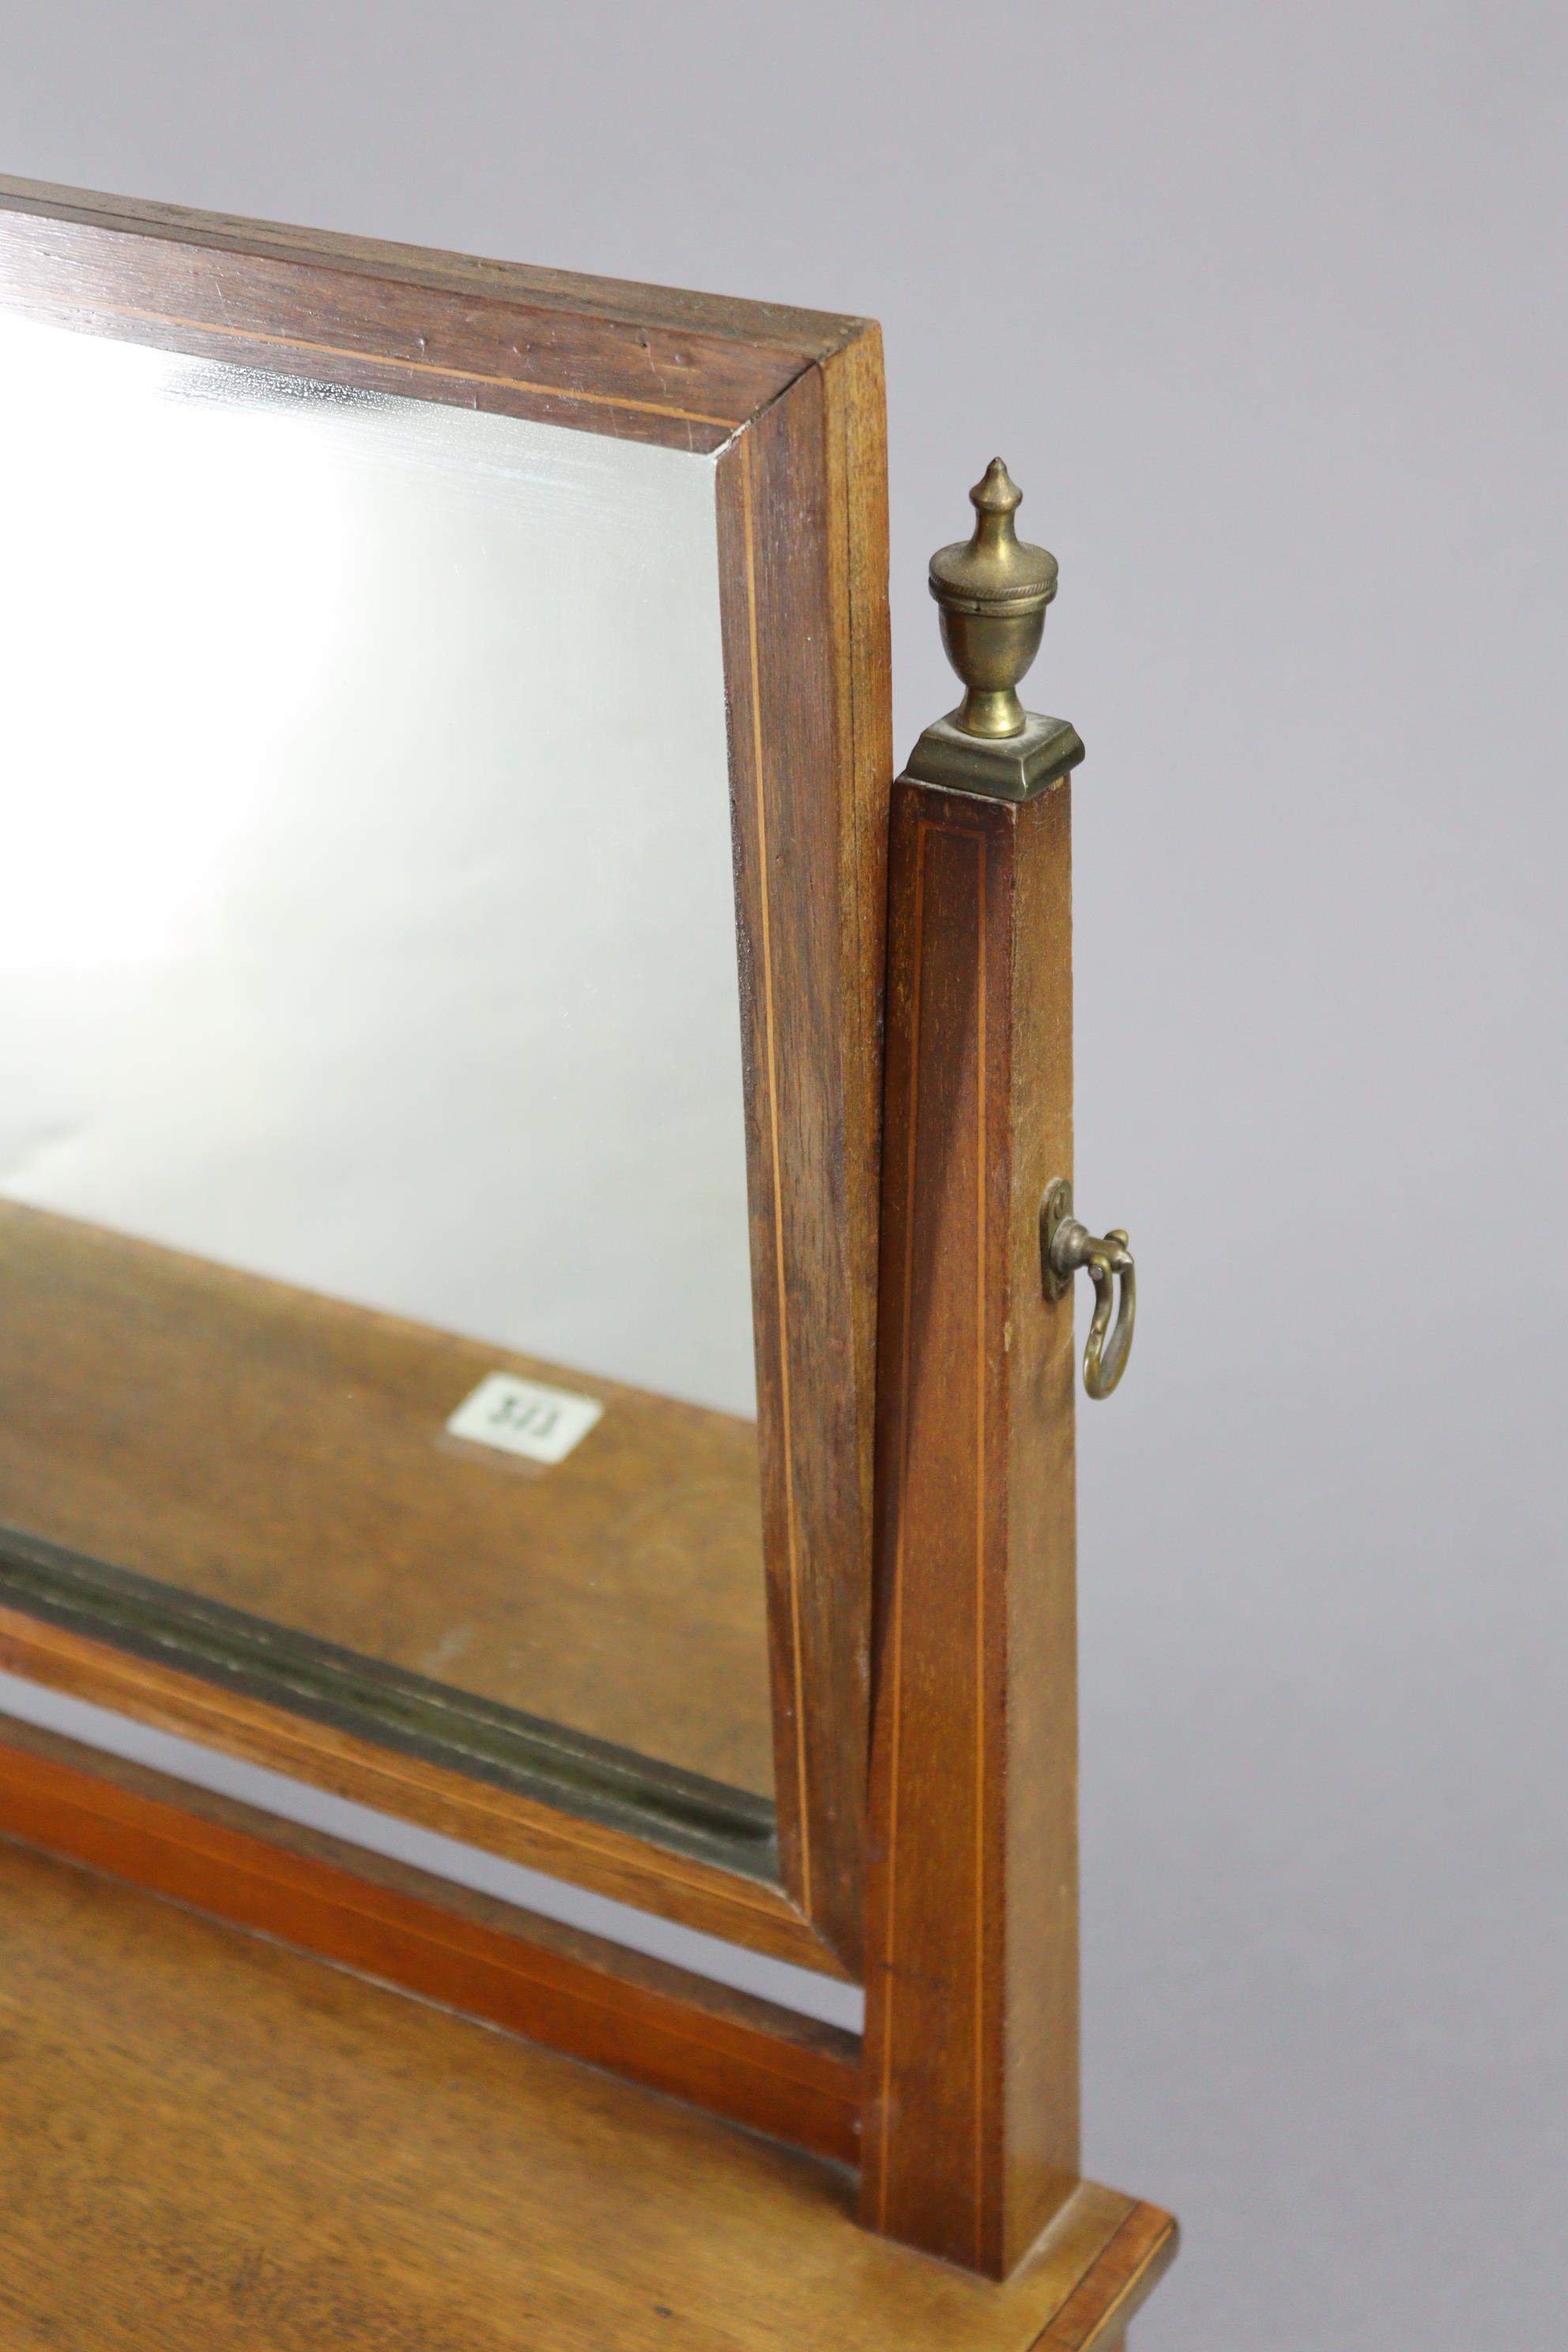 An Edwardian inlaid mahogany rectangular swing toilet glass, fitted two small drawers to the box - Image 4 of 5